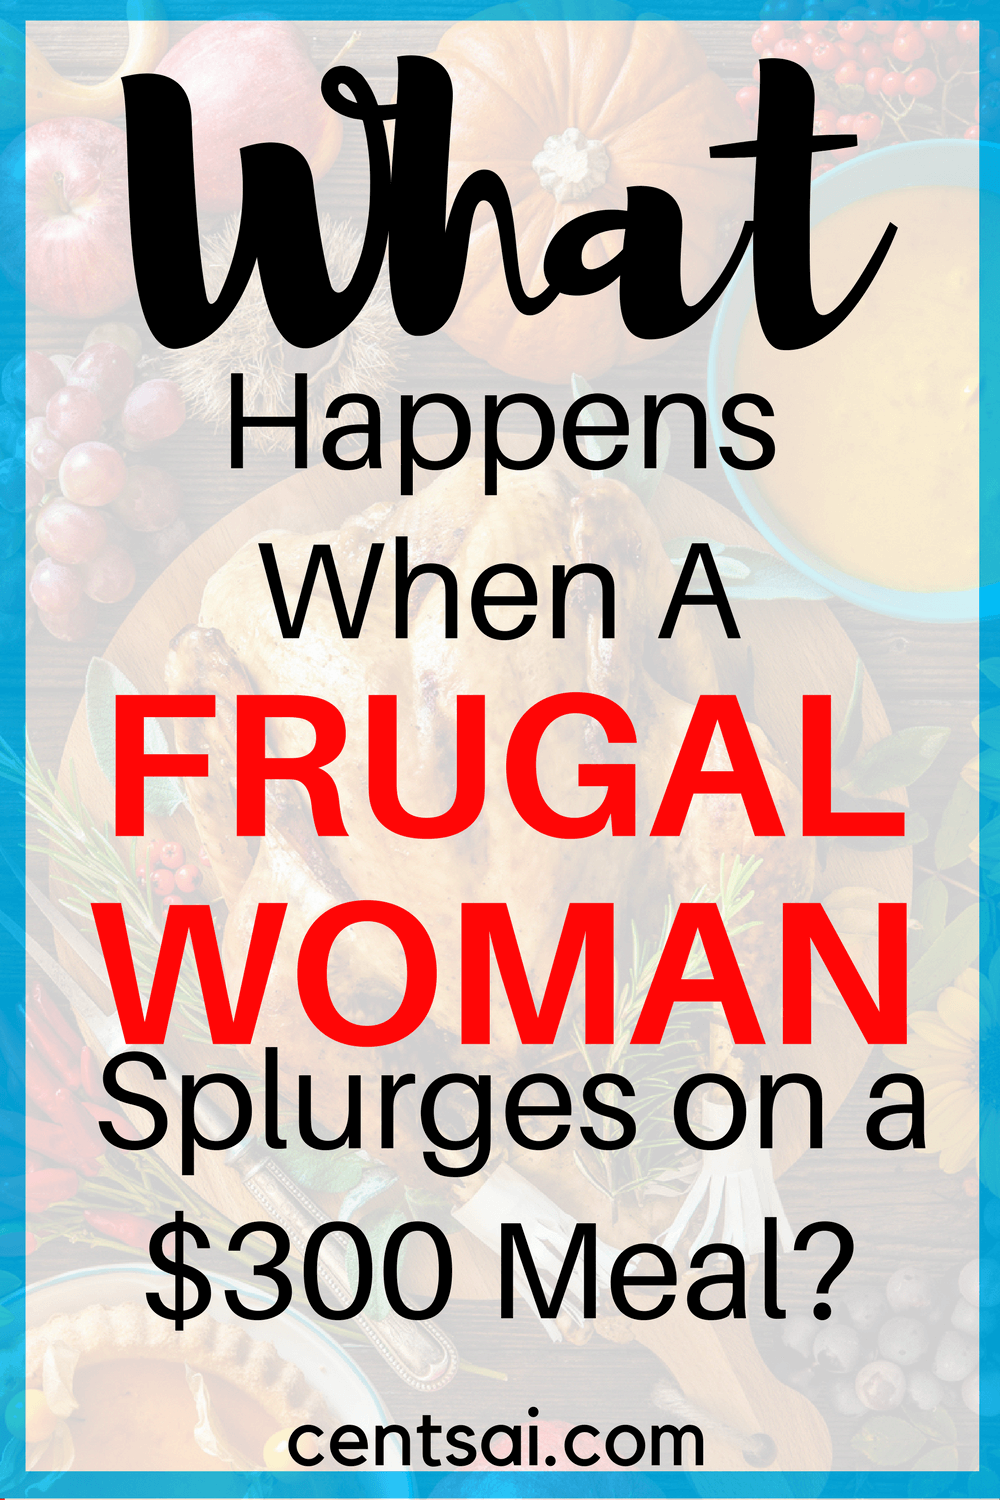 What Happens When A Frugal Woman Splurges on a $300 Meal?